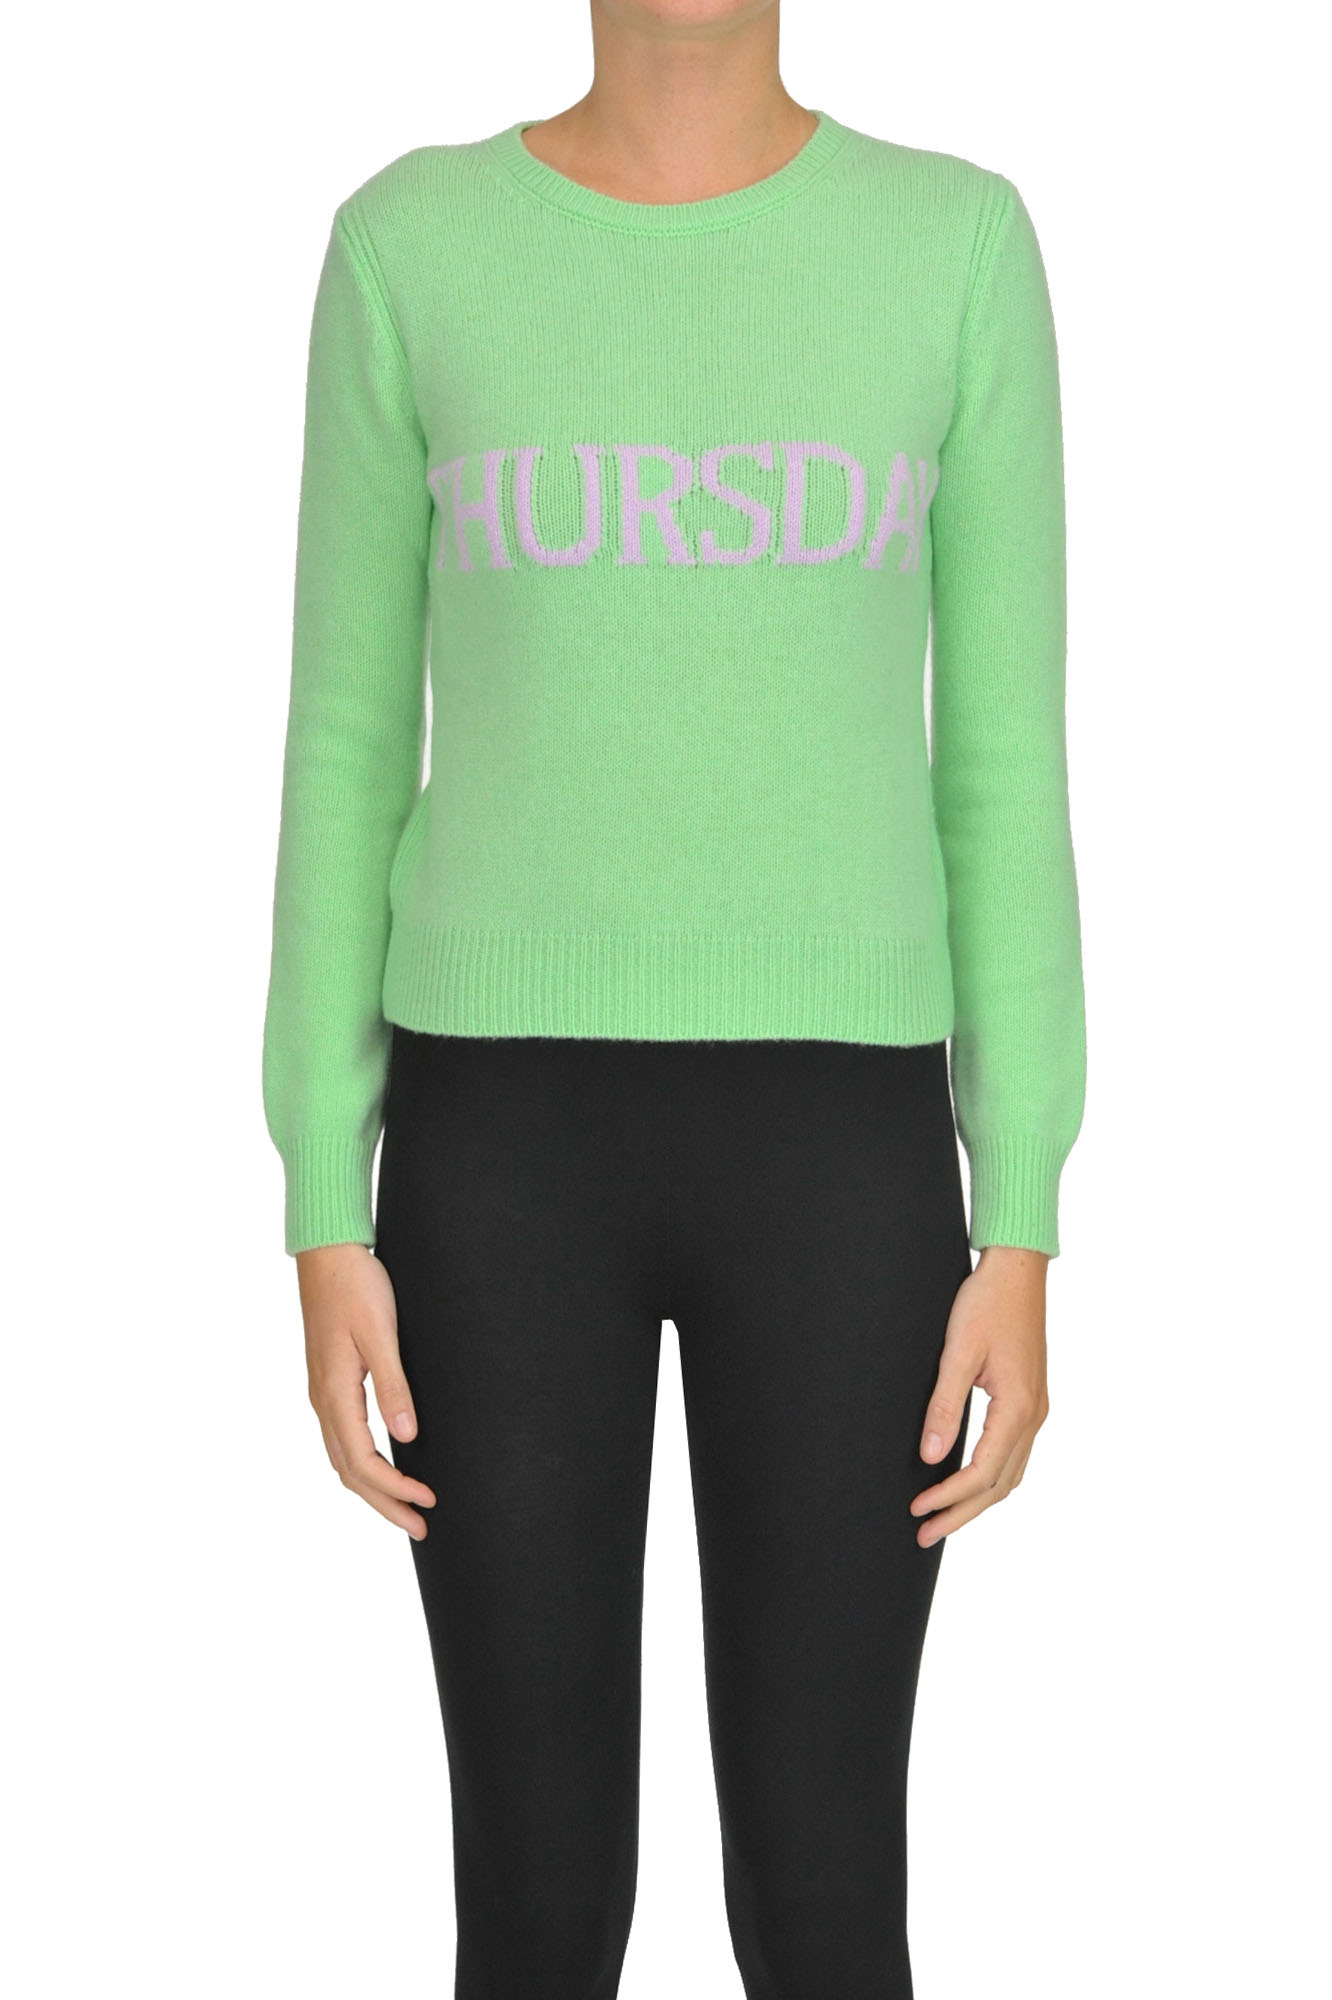 Alberta Ferretti 'Thursday' Pullover In Pastel Green